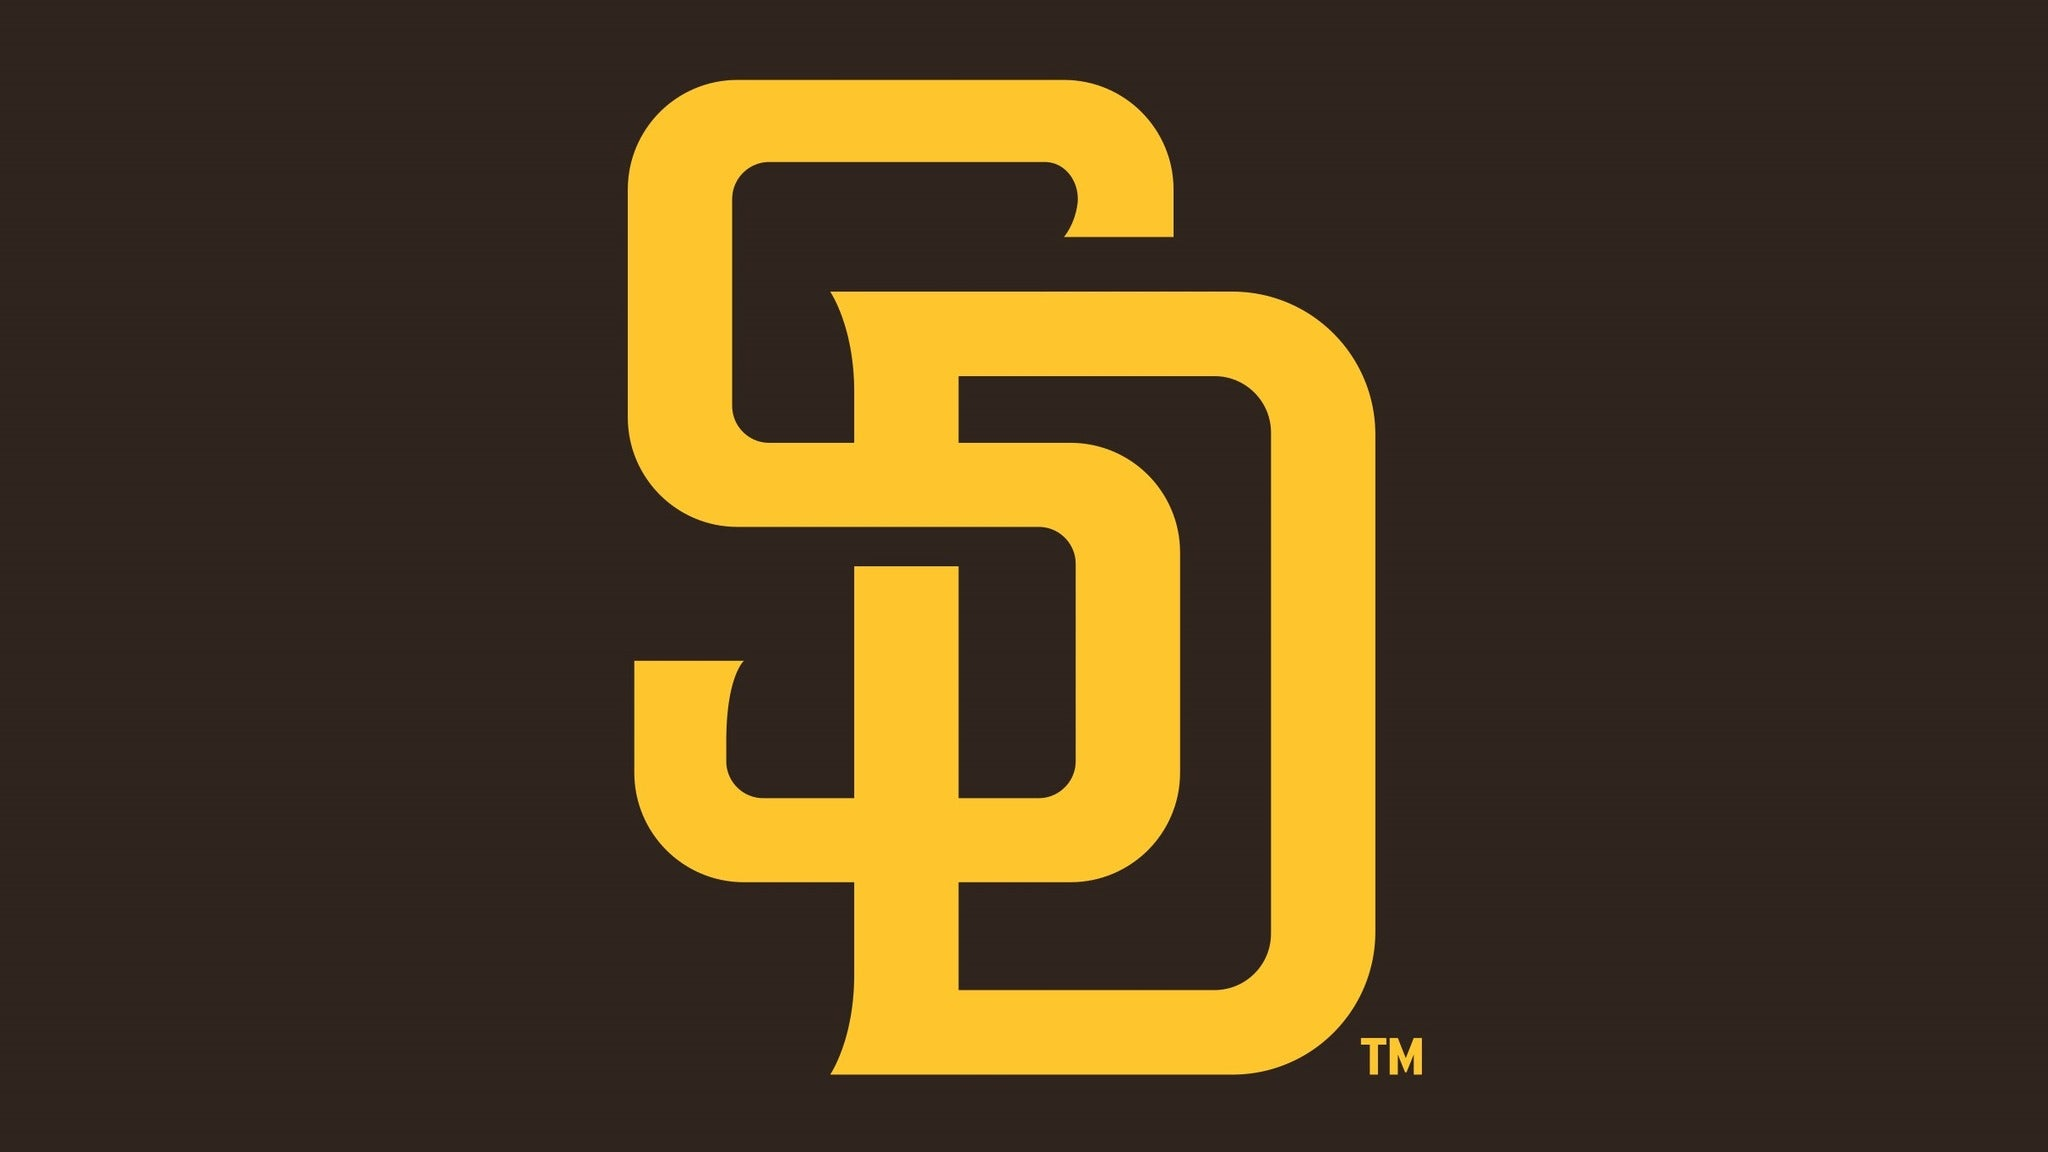 San Diego Padres vs. Arizona Diamondbacks at Petco Park